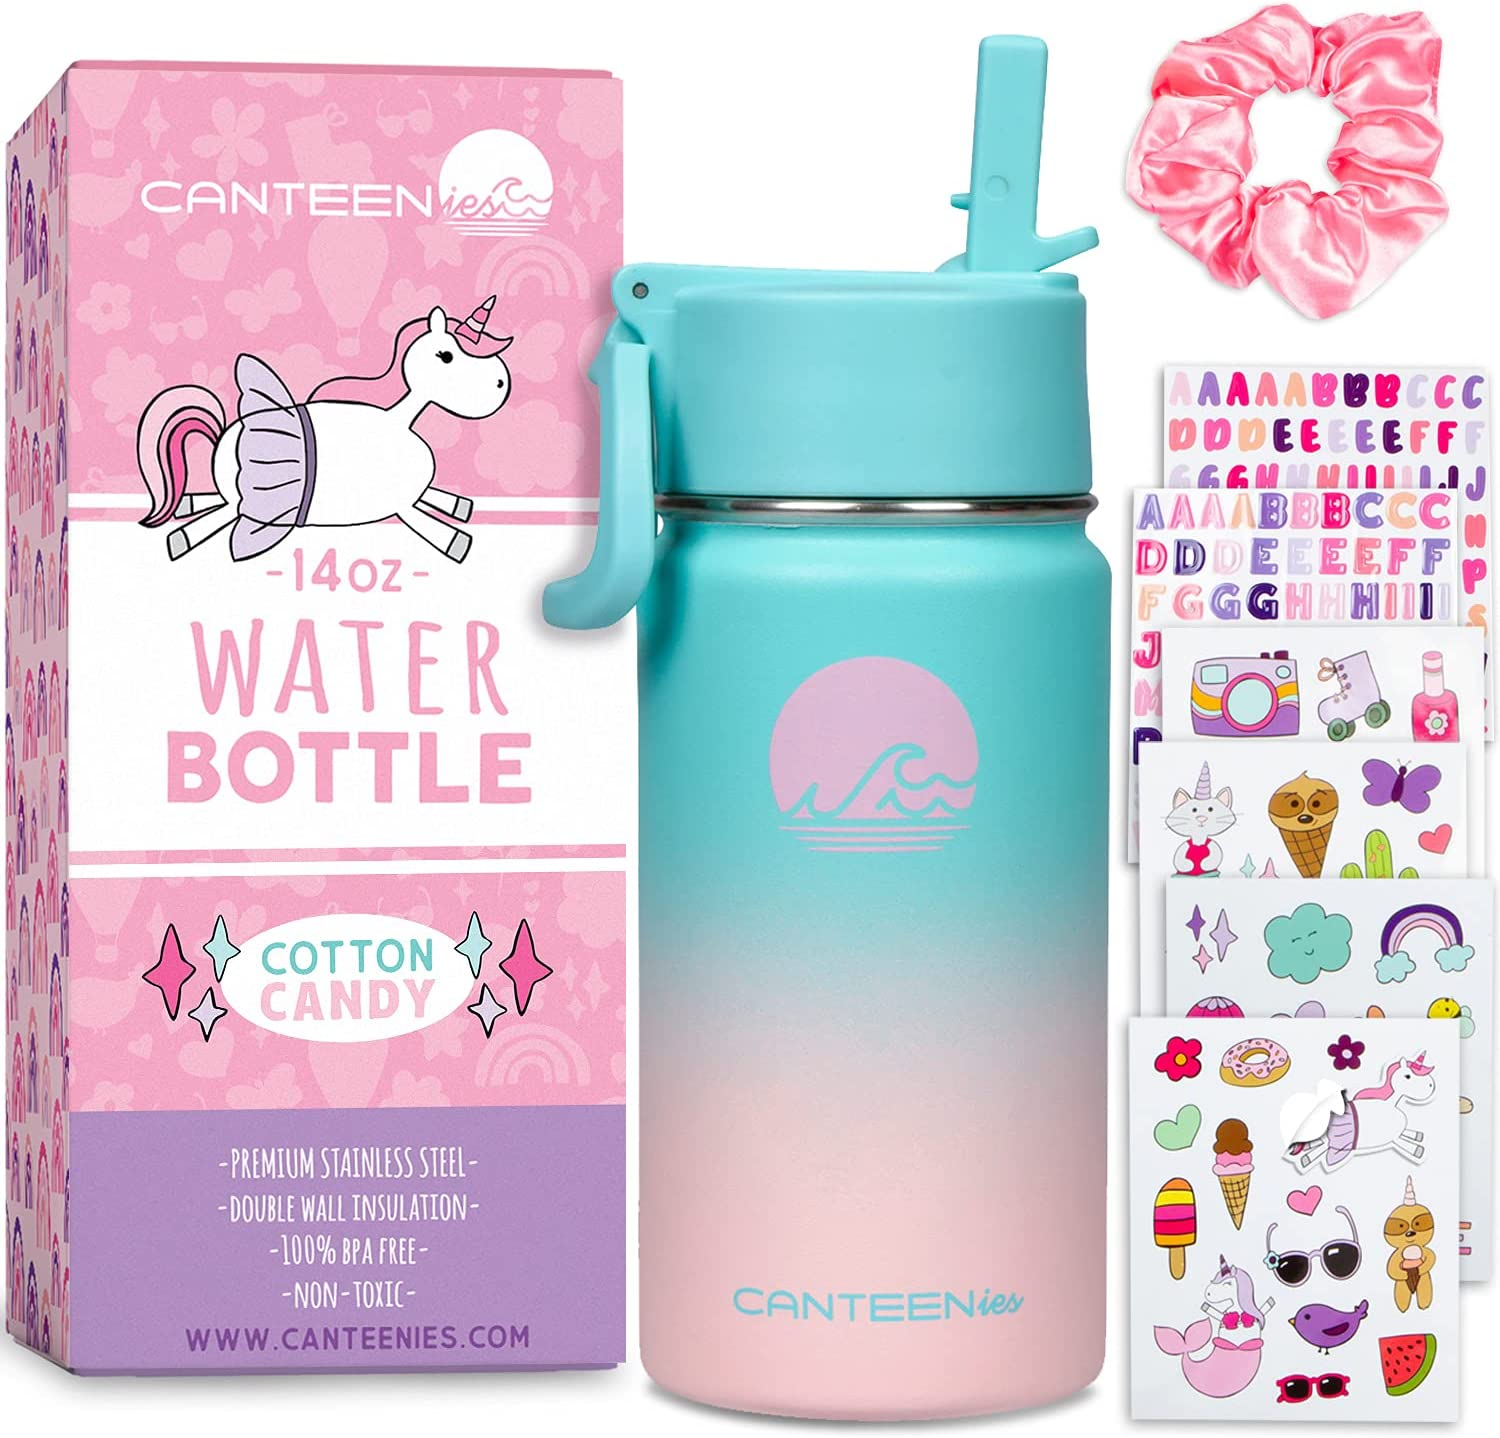 Canteenies Kids Stainless Steel Water Bottle - Vacuum Insulated Water Bottle with Straw, Stickers, and Scrunchies - BPA Free Food-Safe Leak-Proof Lid Tumbler - Cotton Candy Gradient (14 Oz)